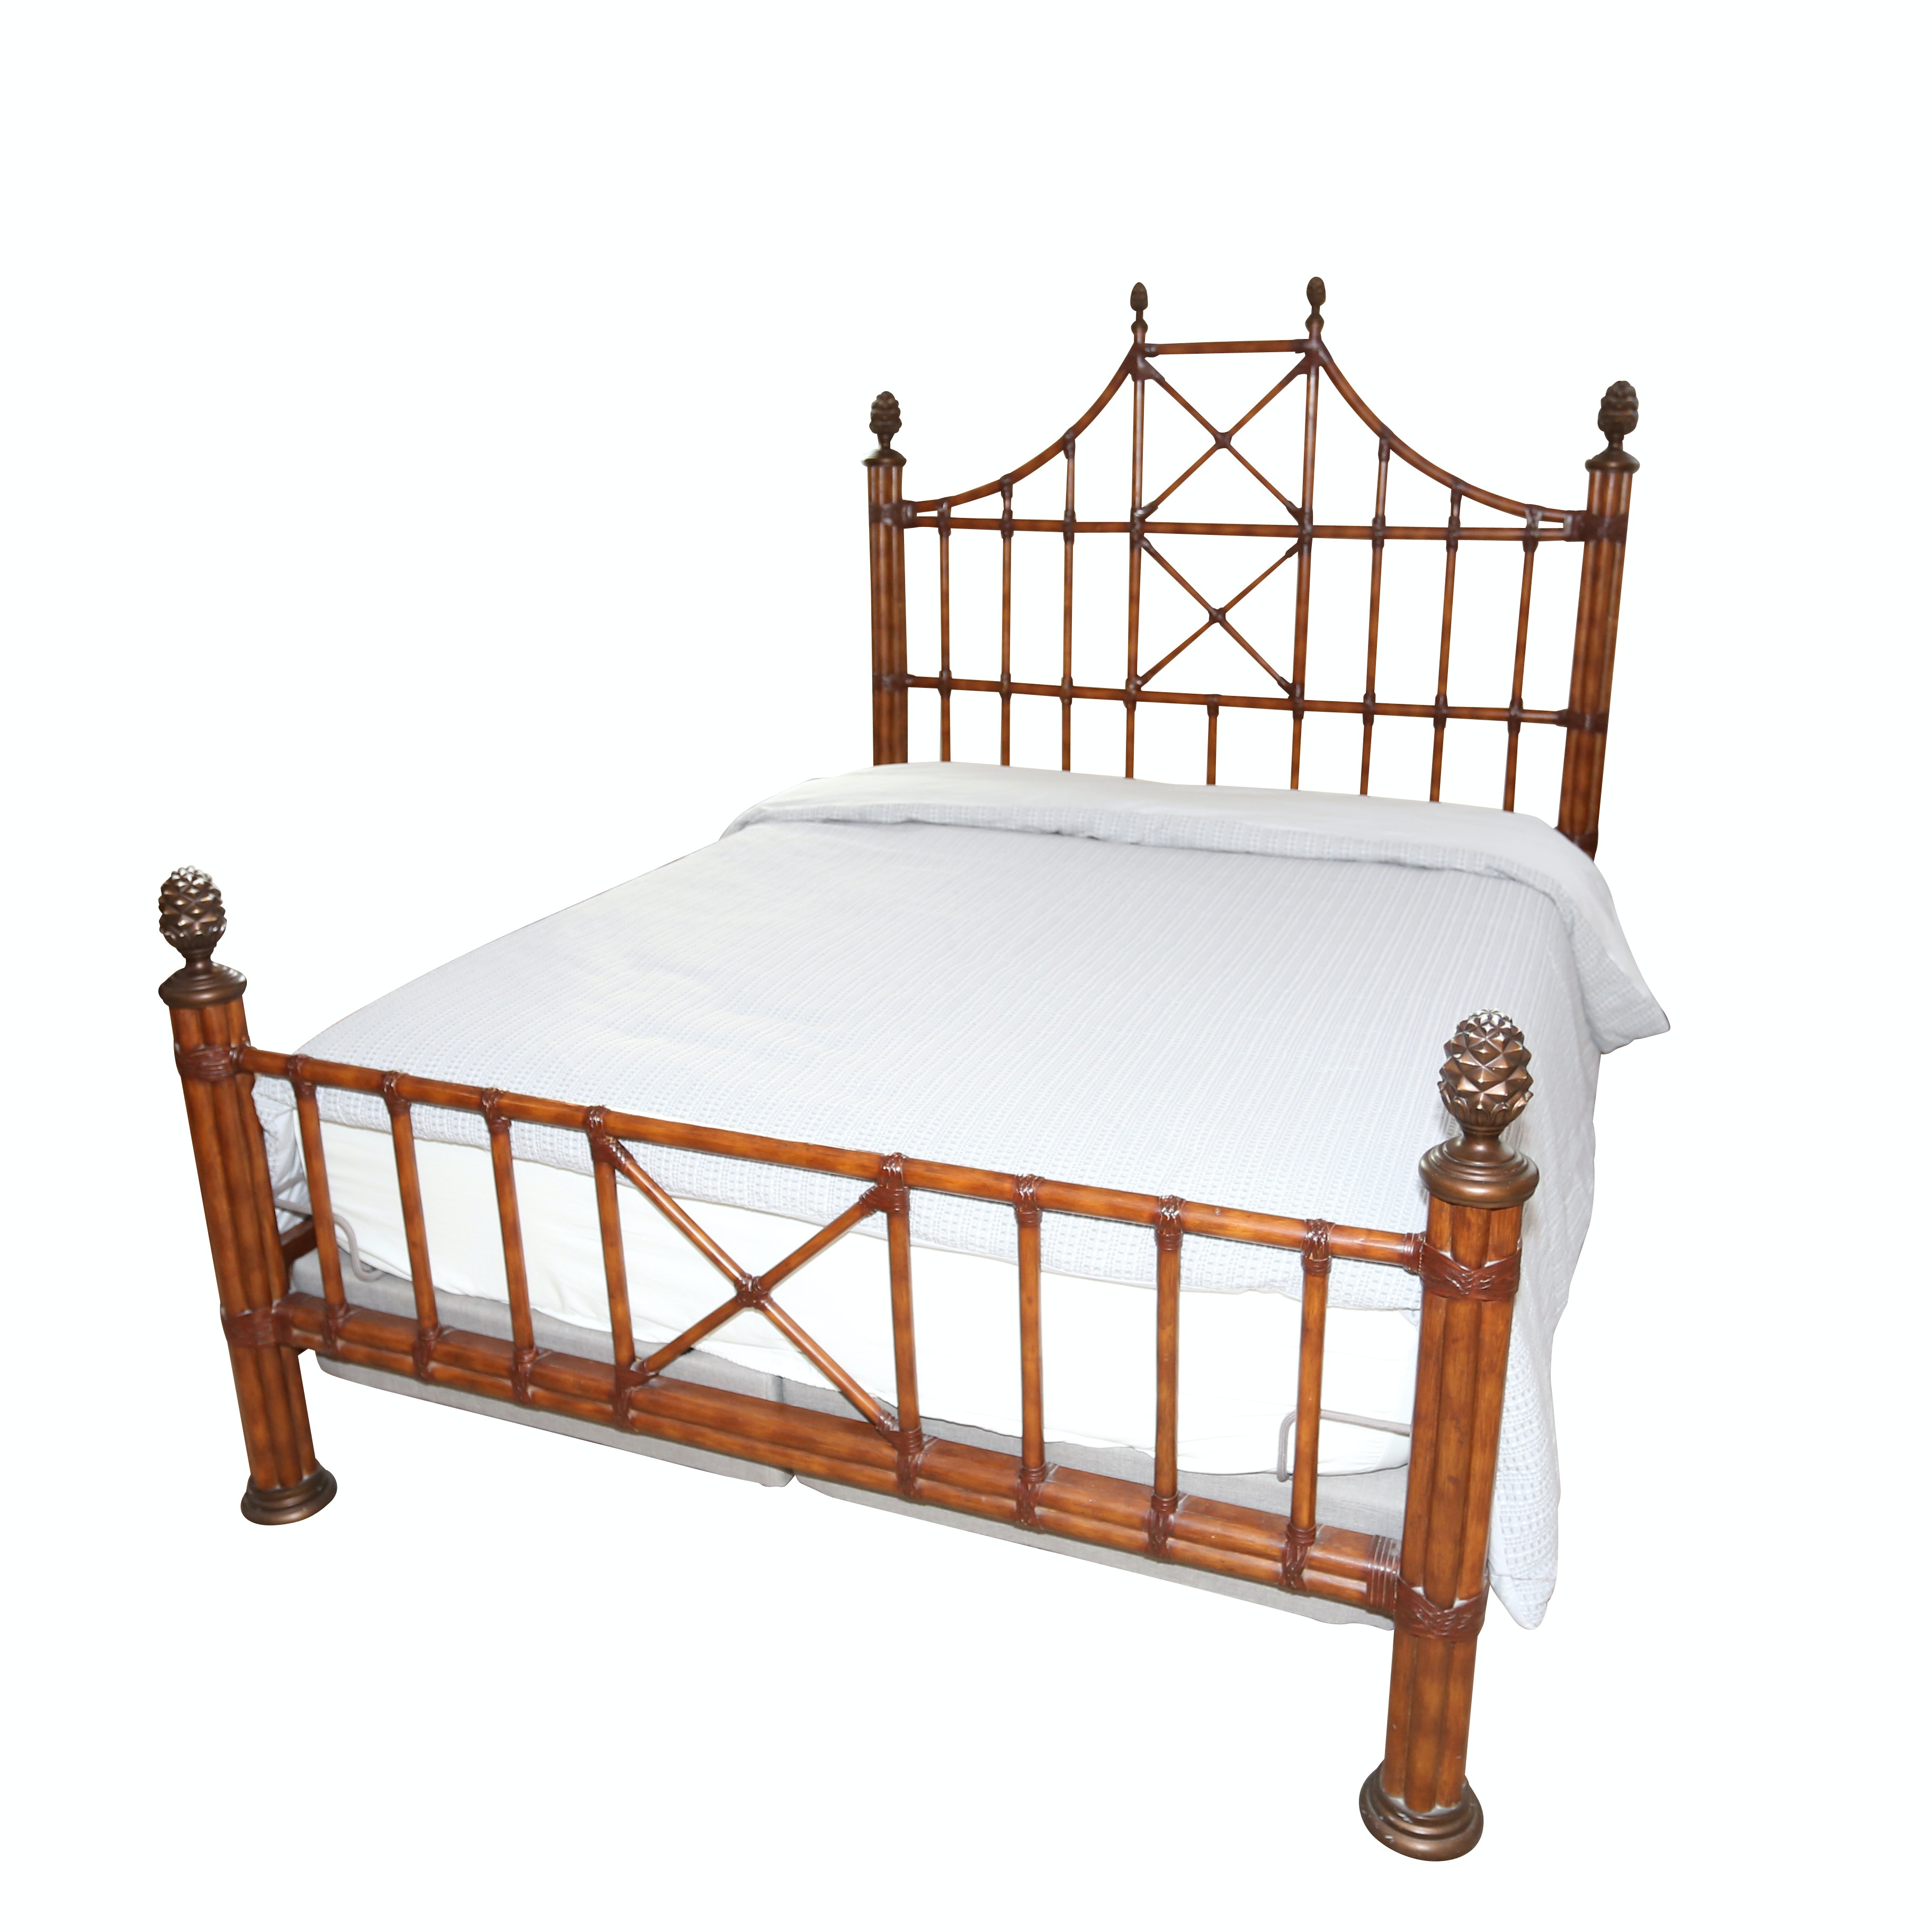 British Colonial Style Queen Size Bed Frame, 21st Century